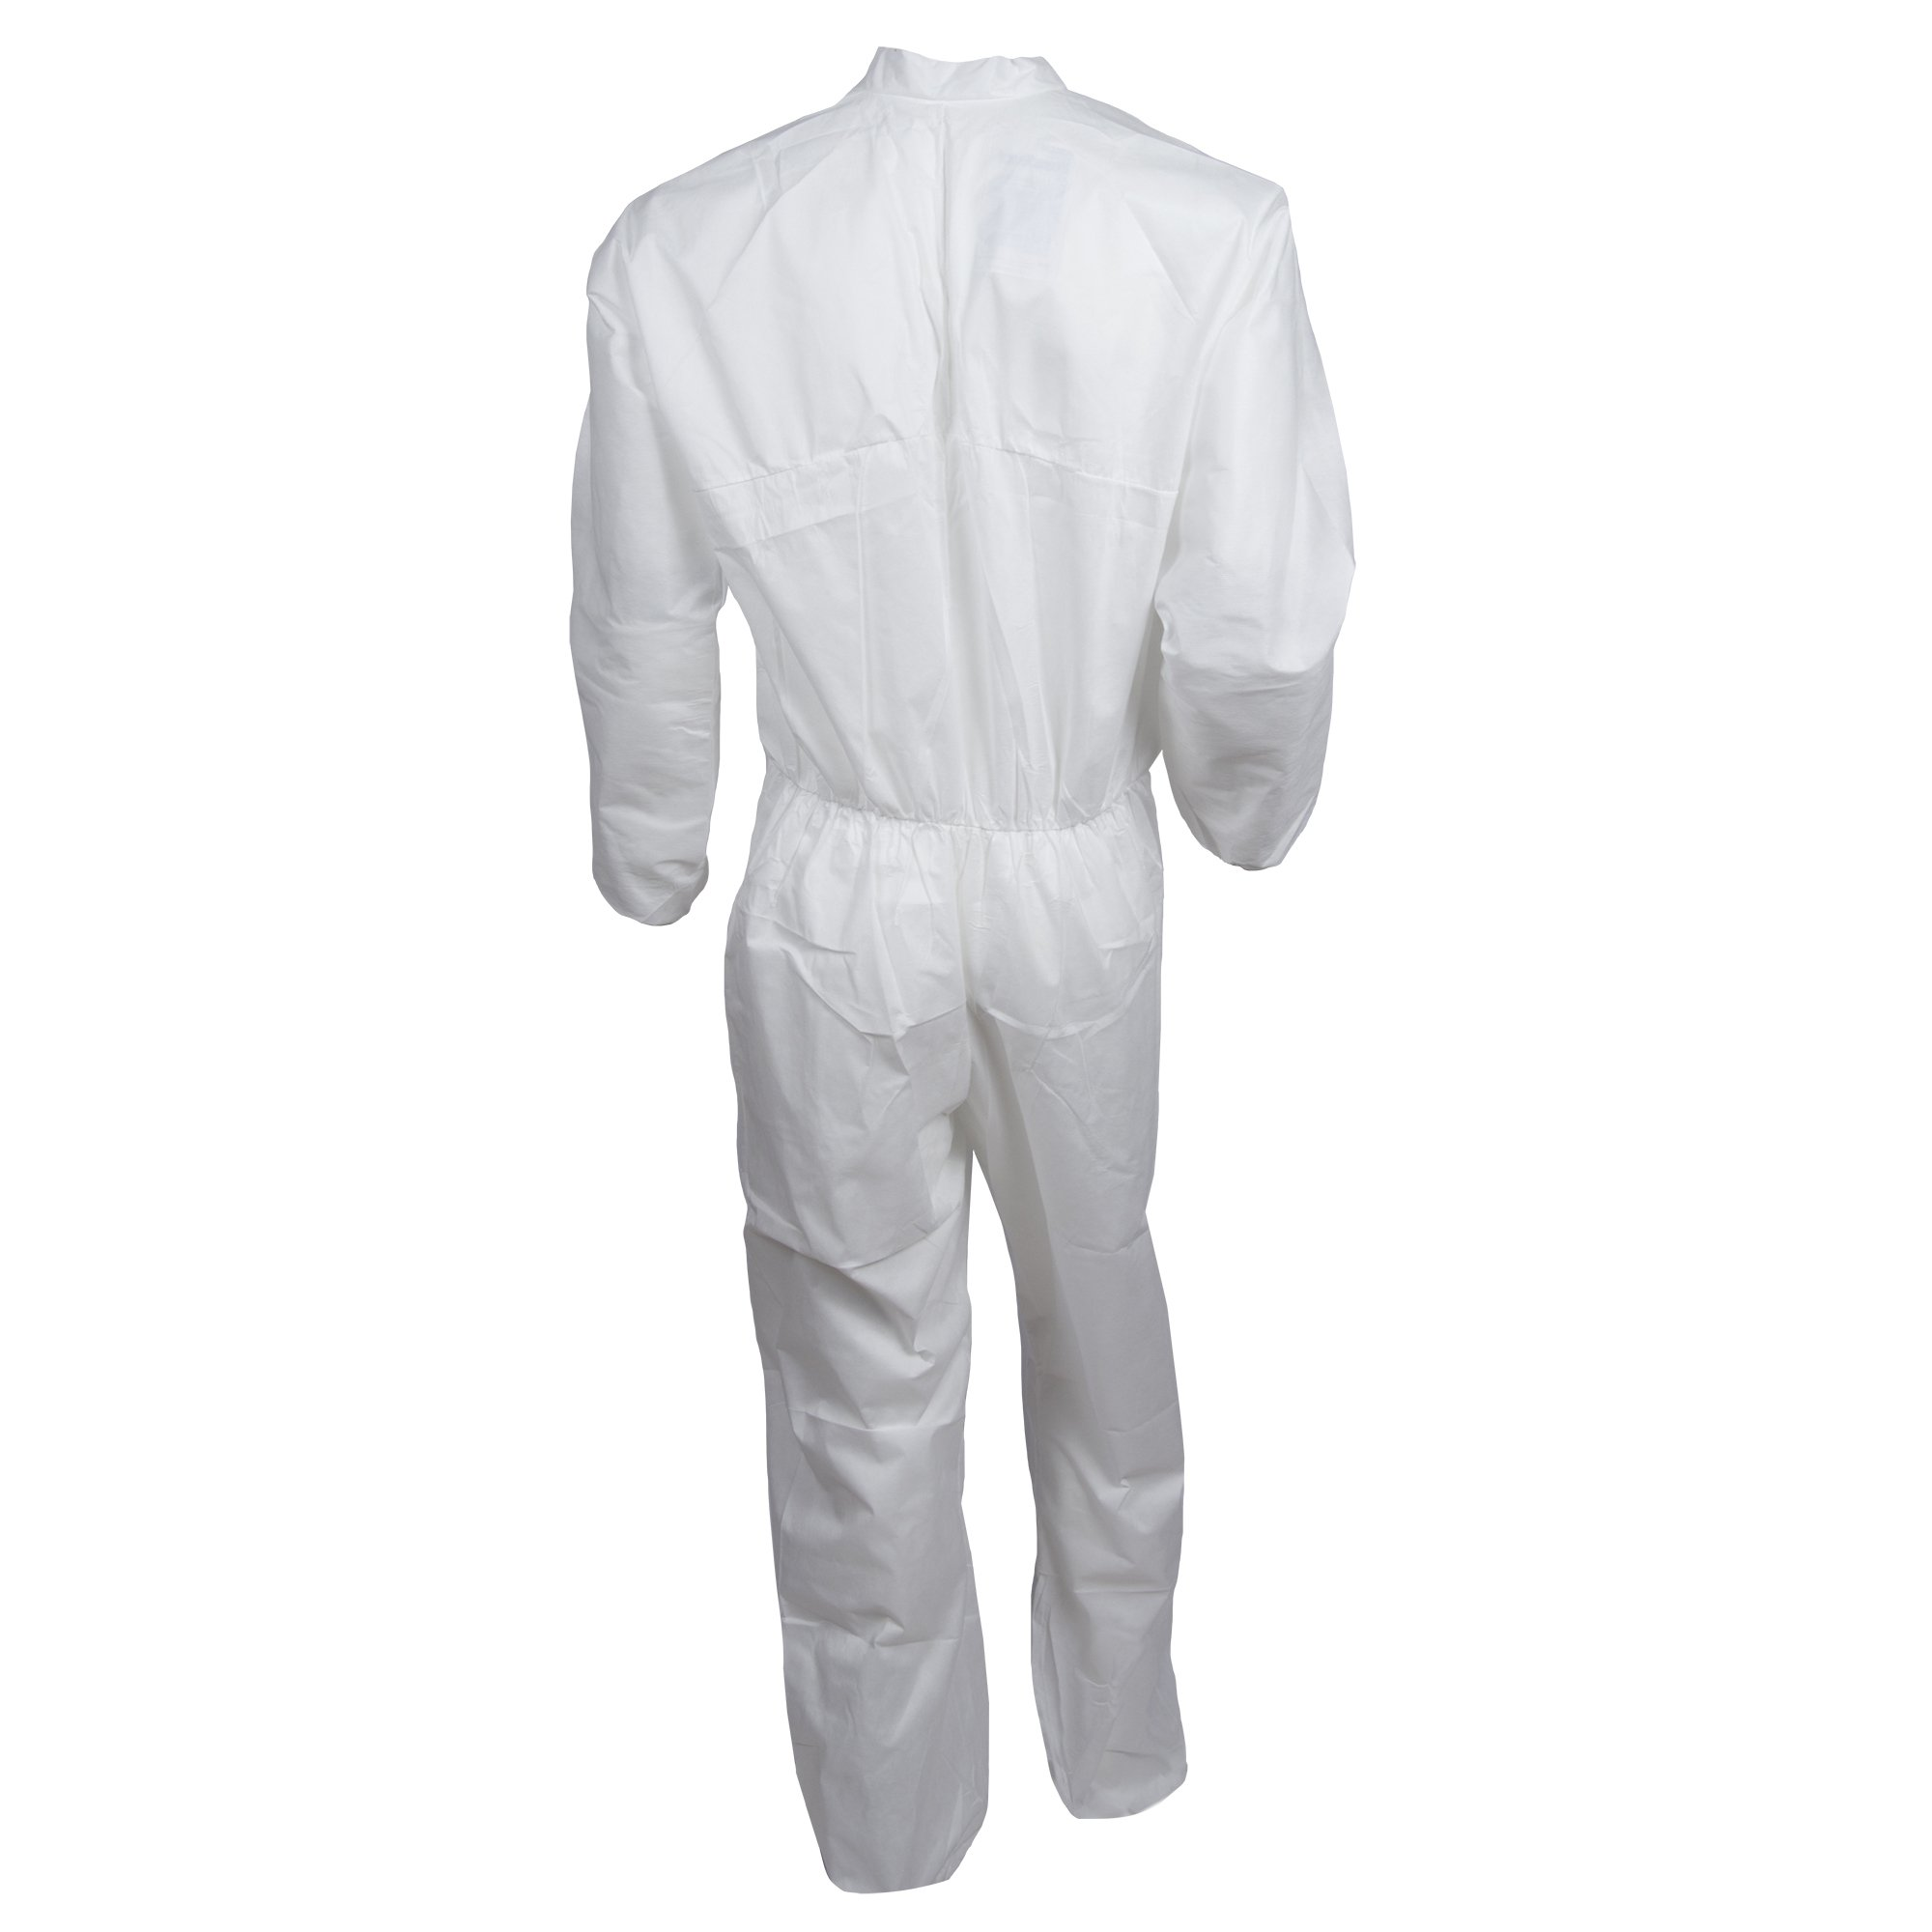 Kleenguard A10 Light Duty Coveralls (10616), Zip Front, Elastic Wrists, Breathable Material, White, 2XL, 25 / Case by Kimberly-Clark Professional (Image #2)